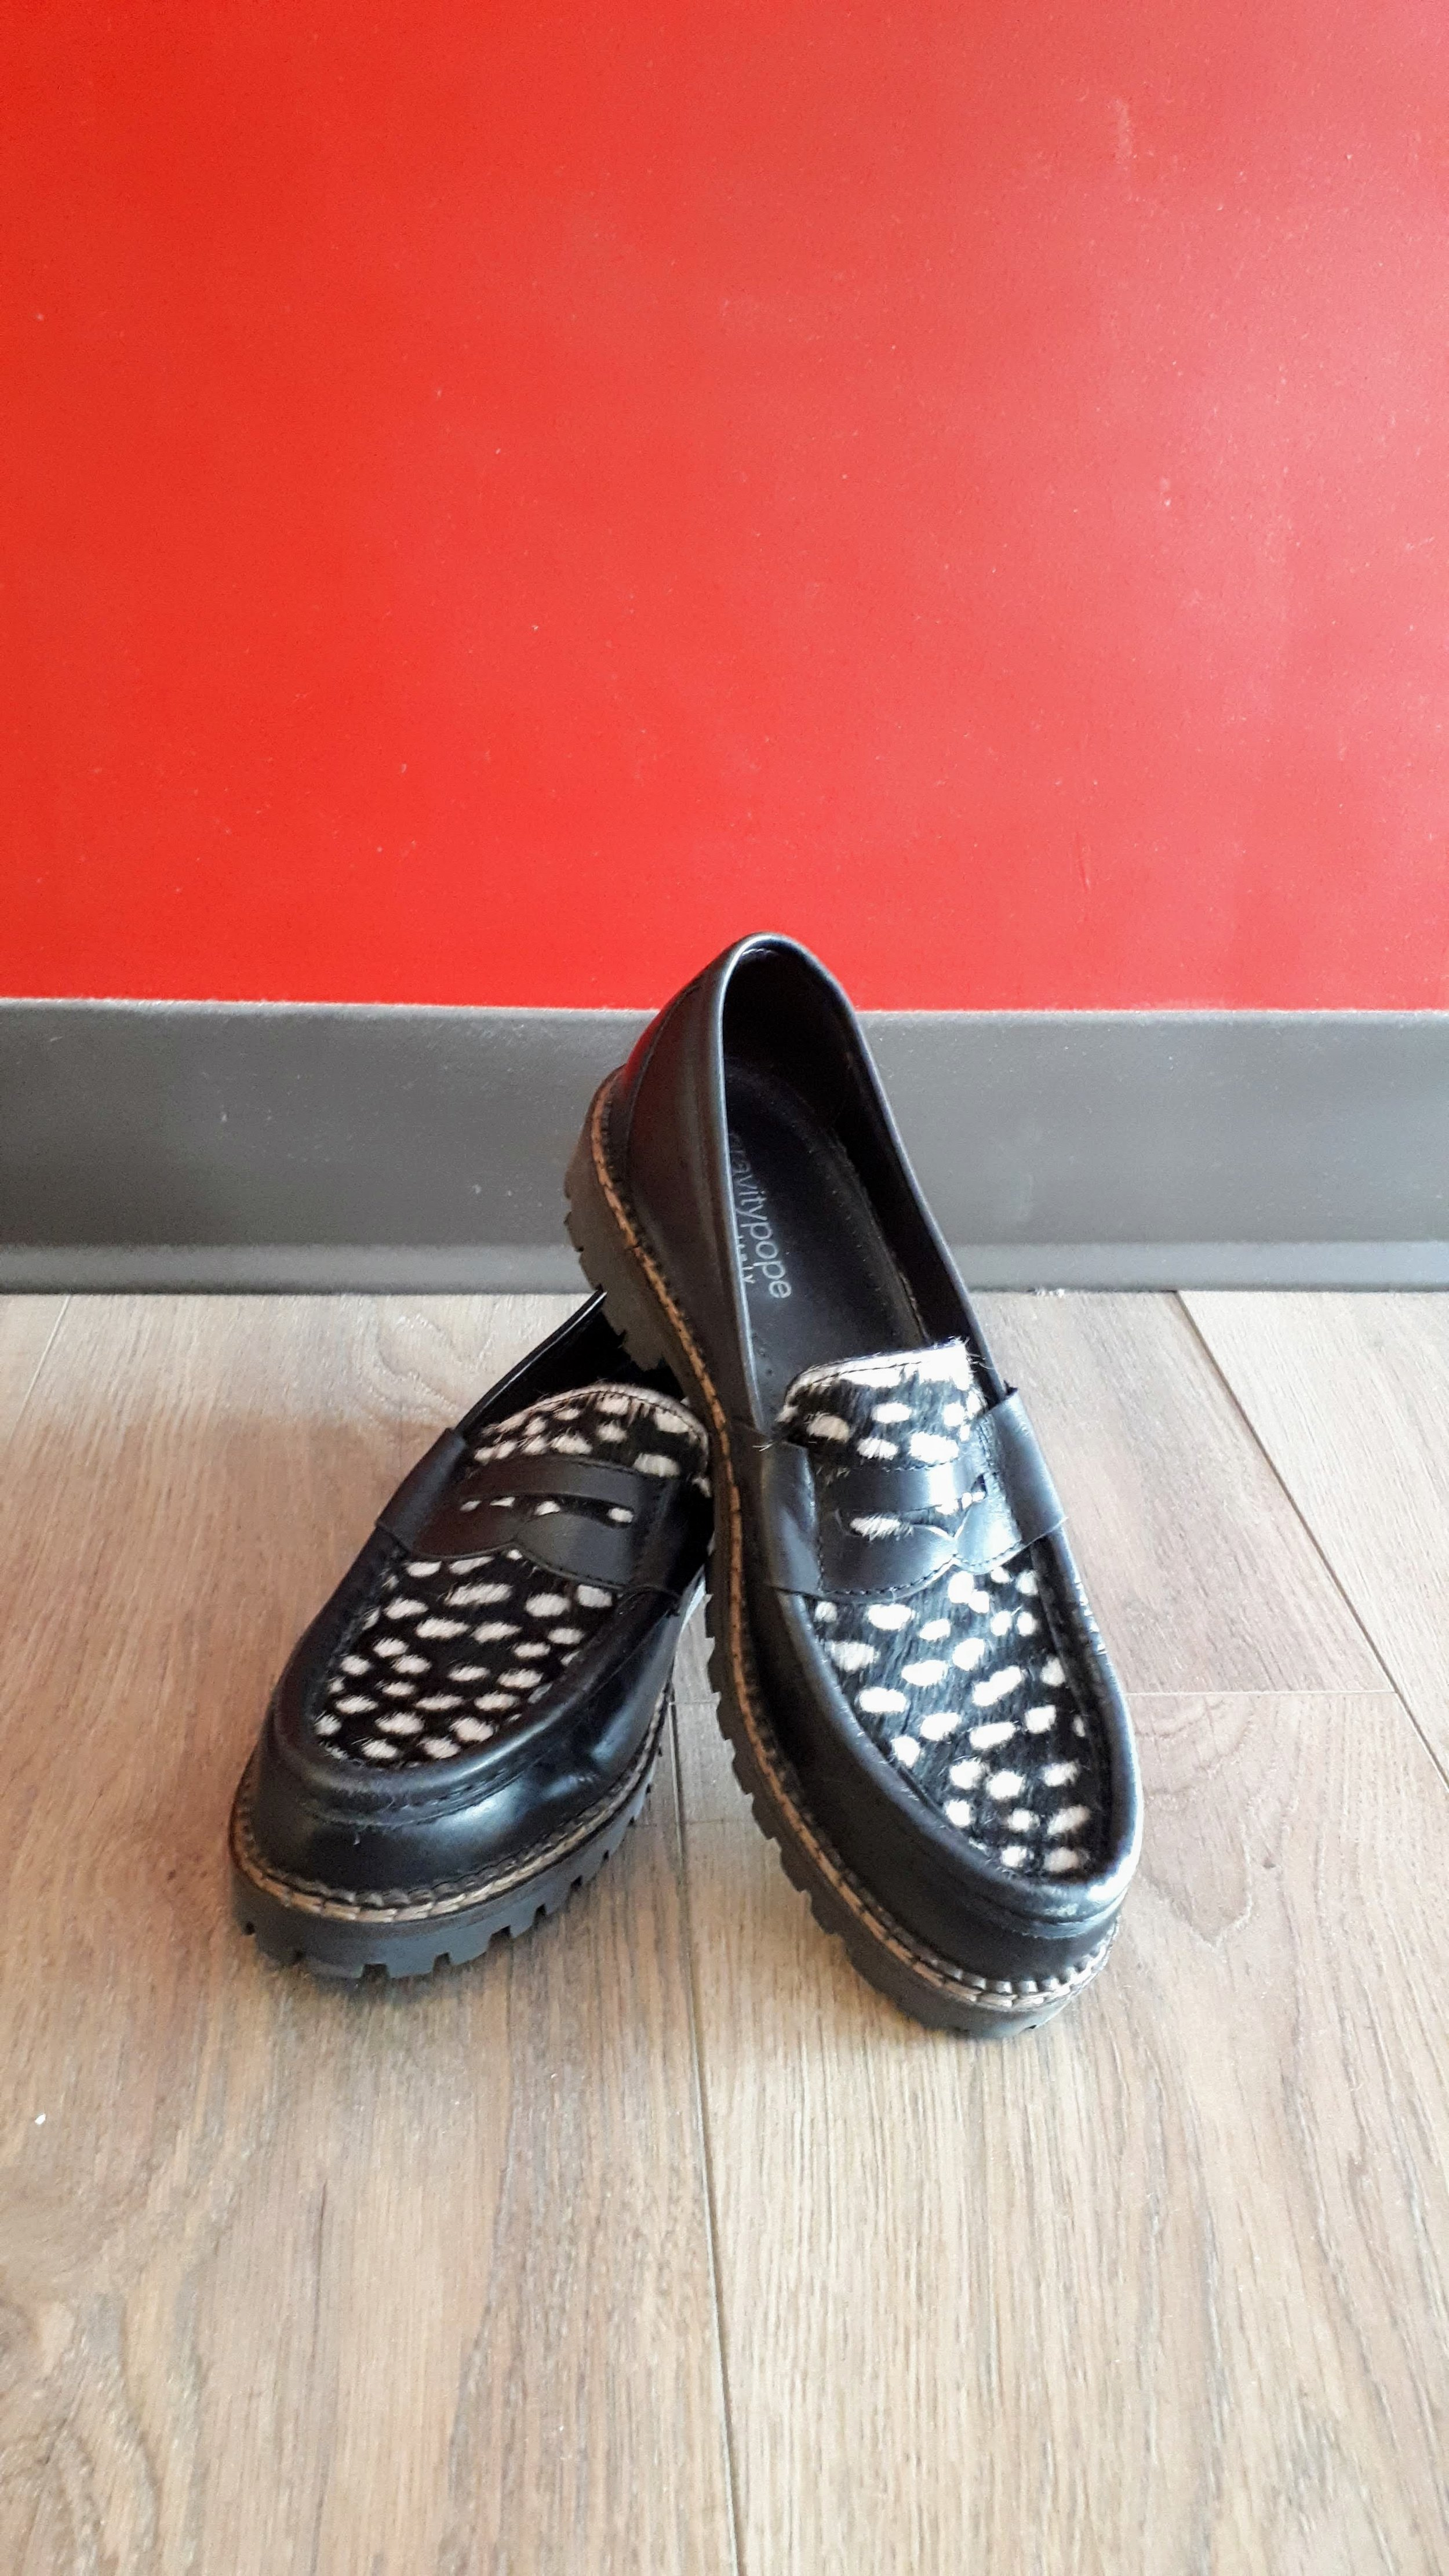 Gravity Pope shoes; Size 8, $52